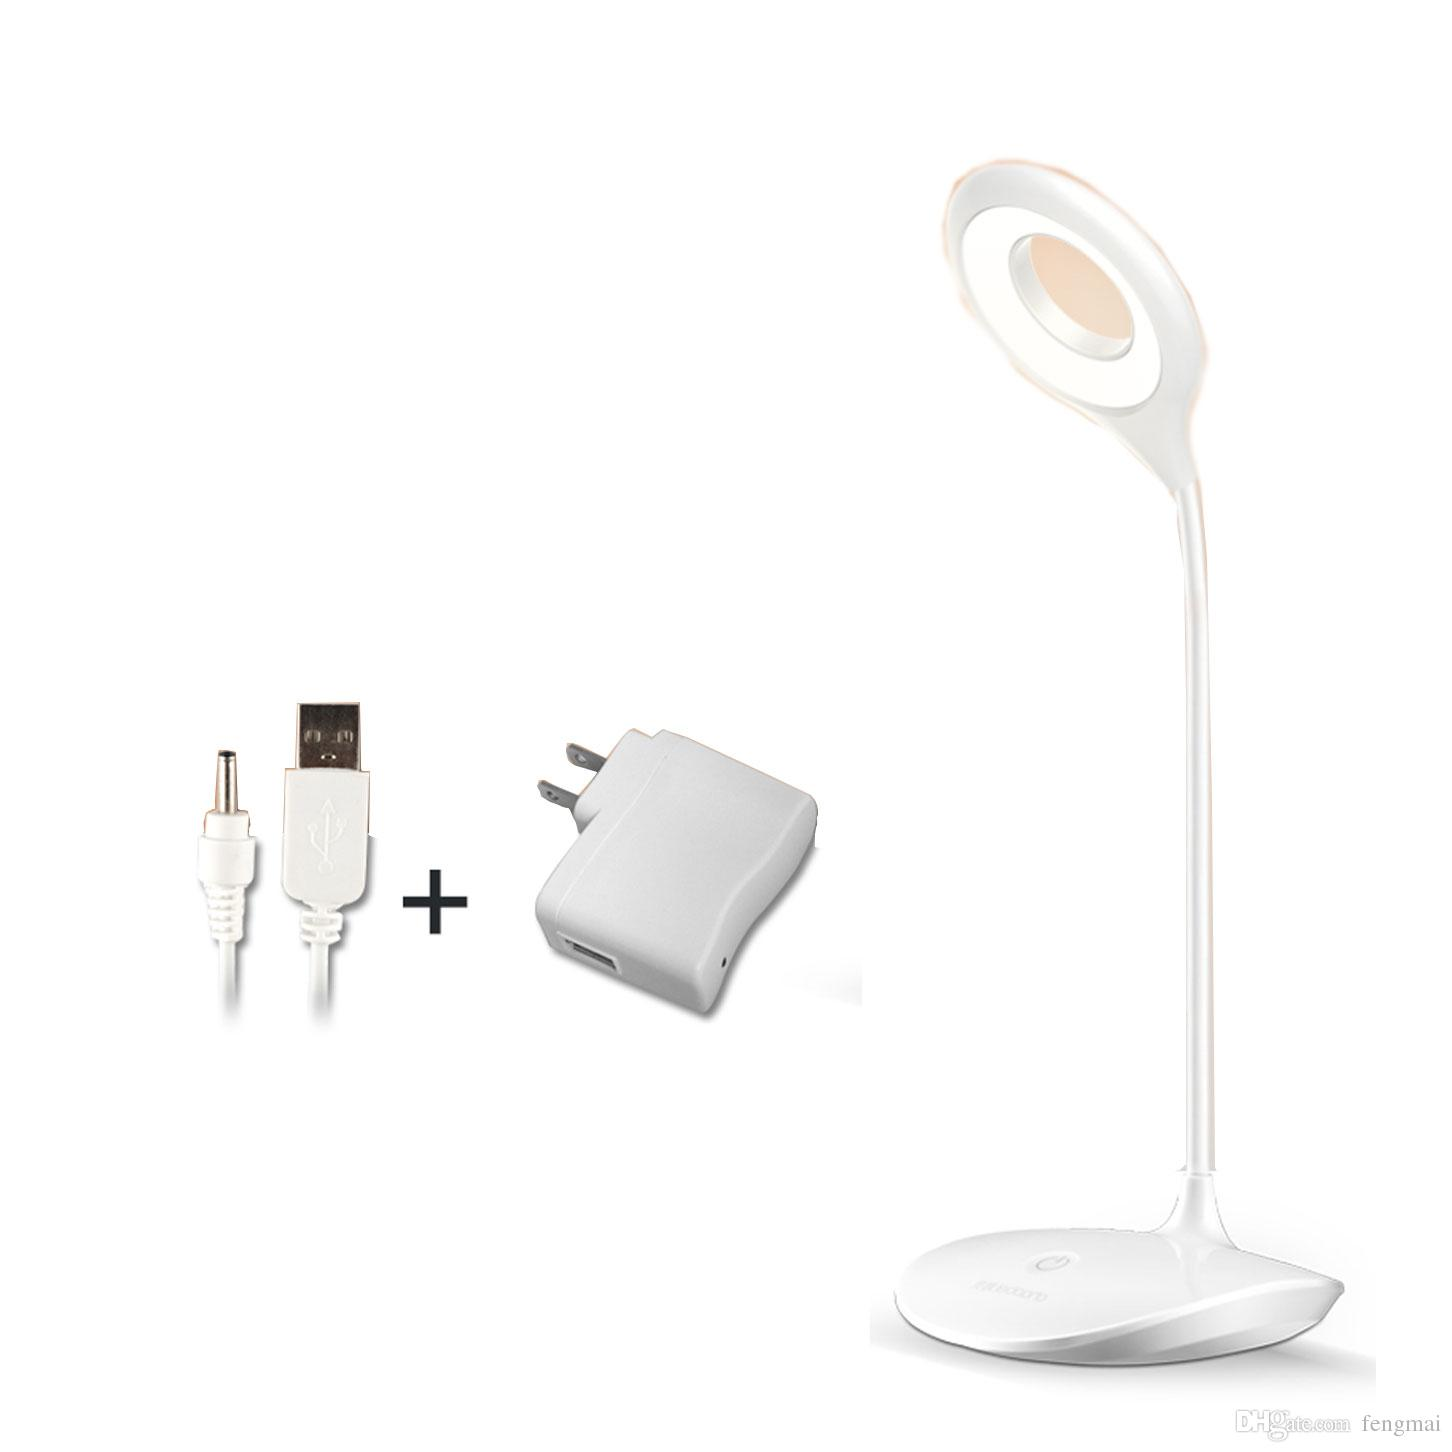 Bureau Chaud Led À Lampe Table FlexibleLecture De ChevetLa MaisonBlanc FT1JlKc3